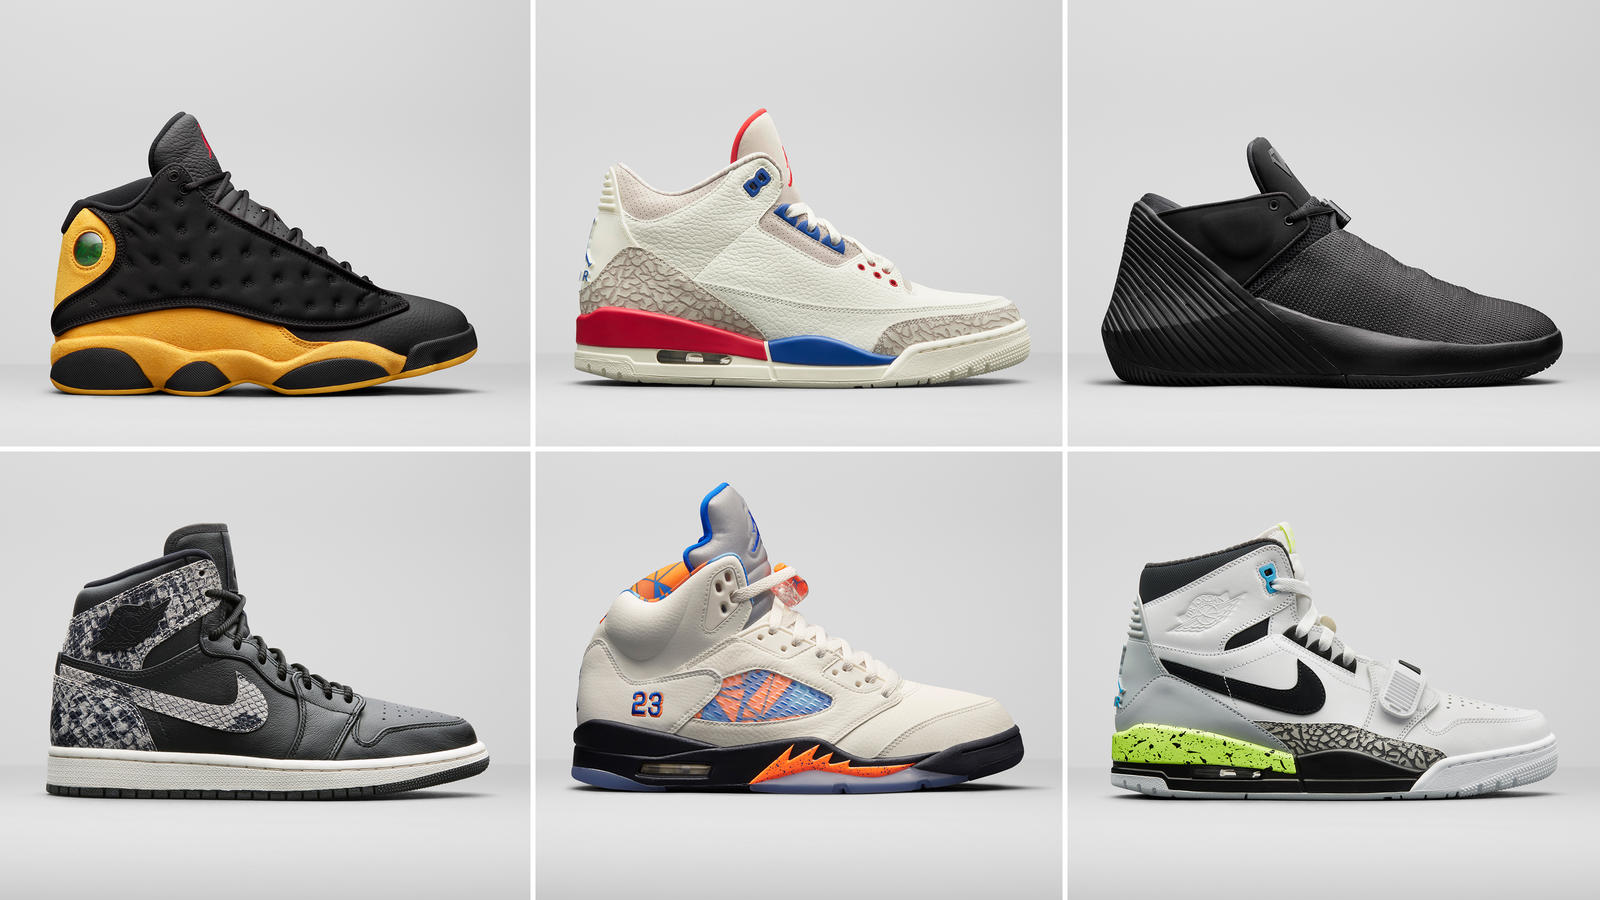 29e6d6d7134 Jordan Brand Fall 2018 Preview - Nike News